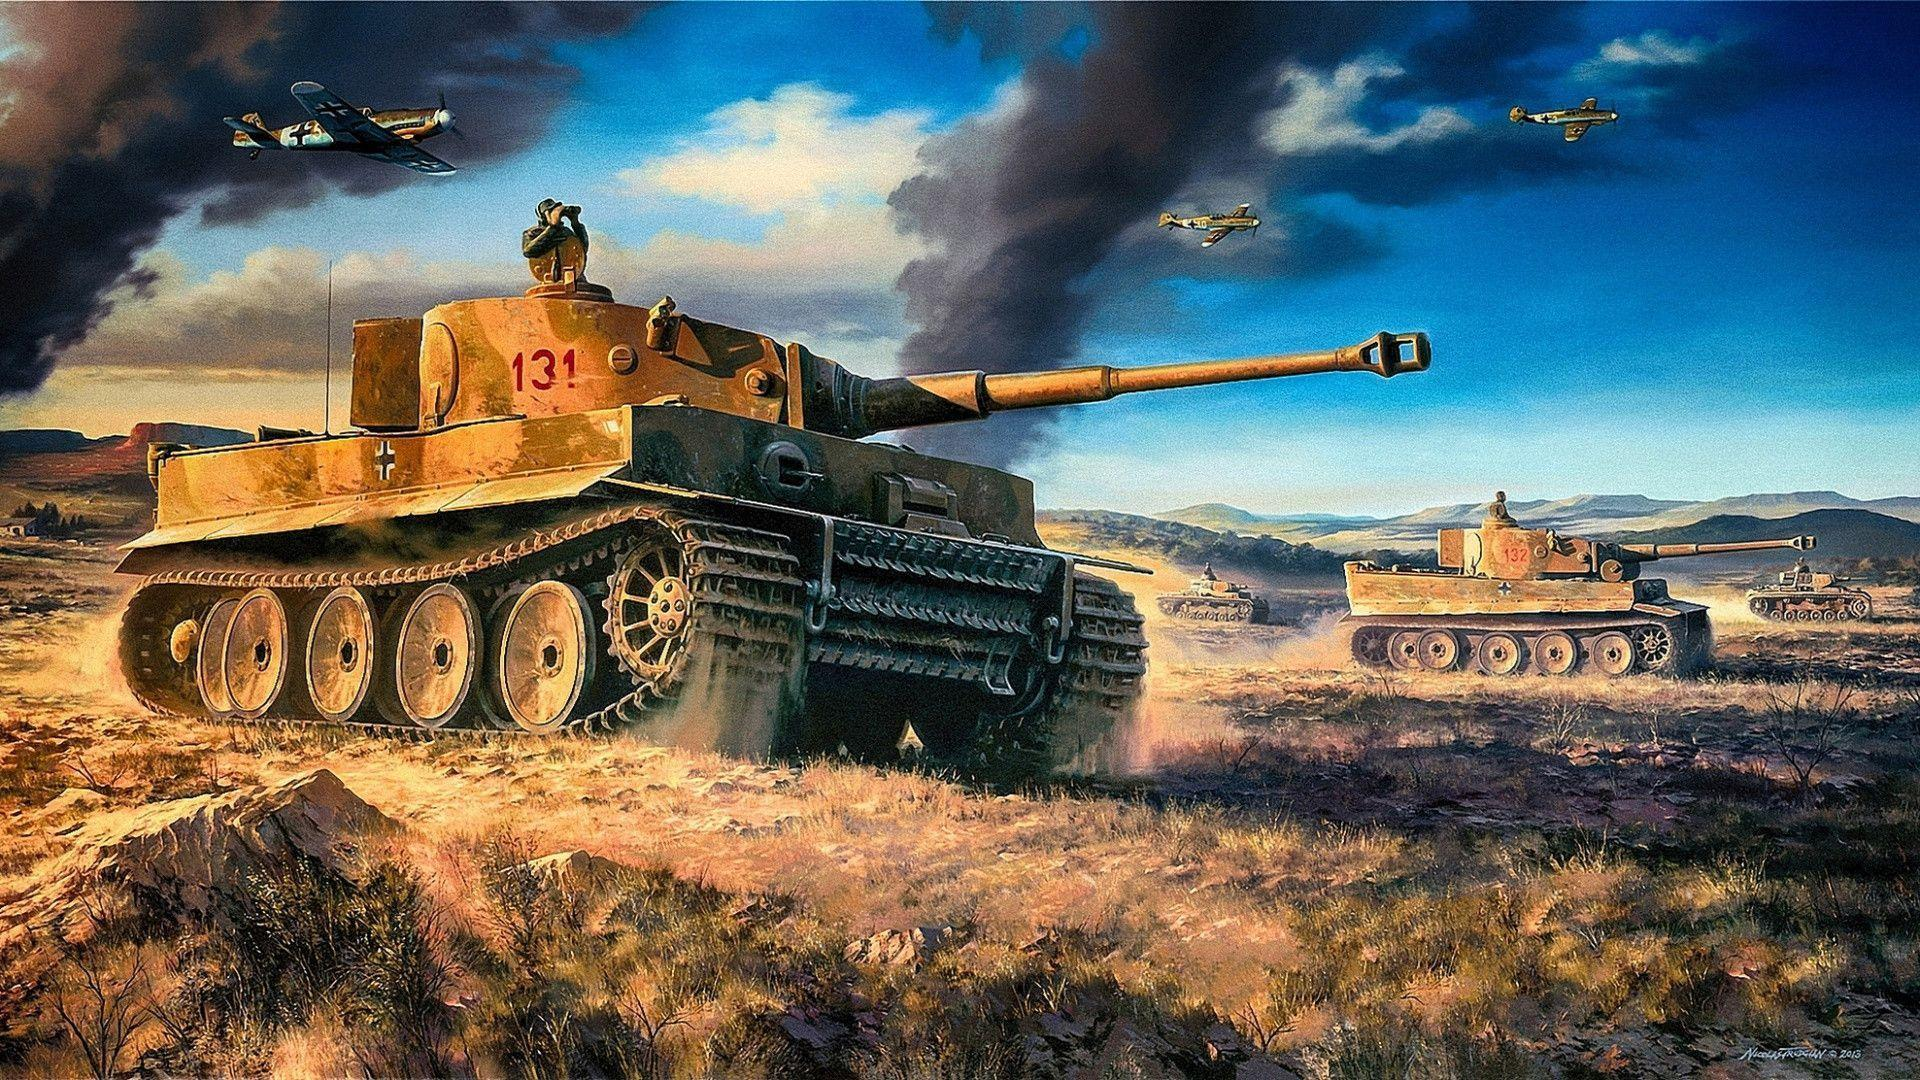 Tiger Tank Wallpapers   Top Tiger Tank Backgrounds 1920x1080